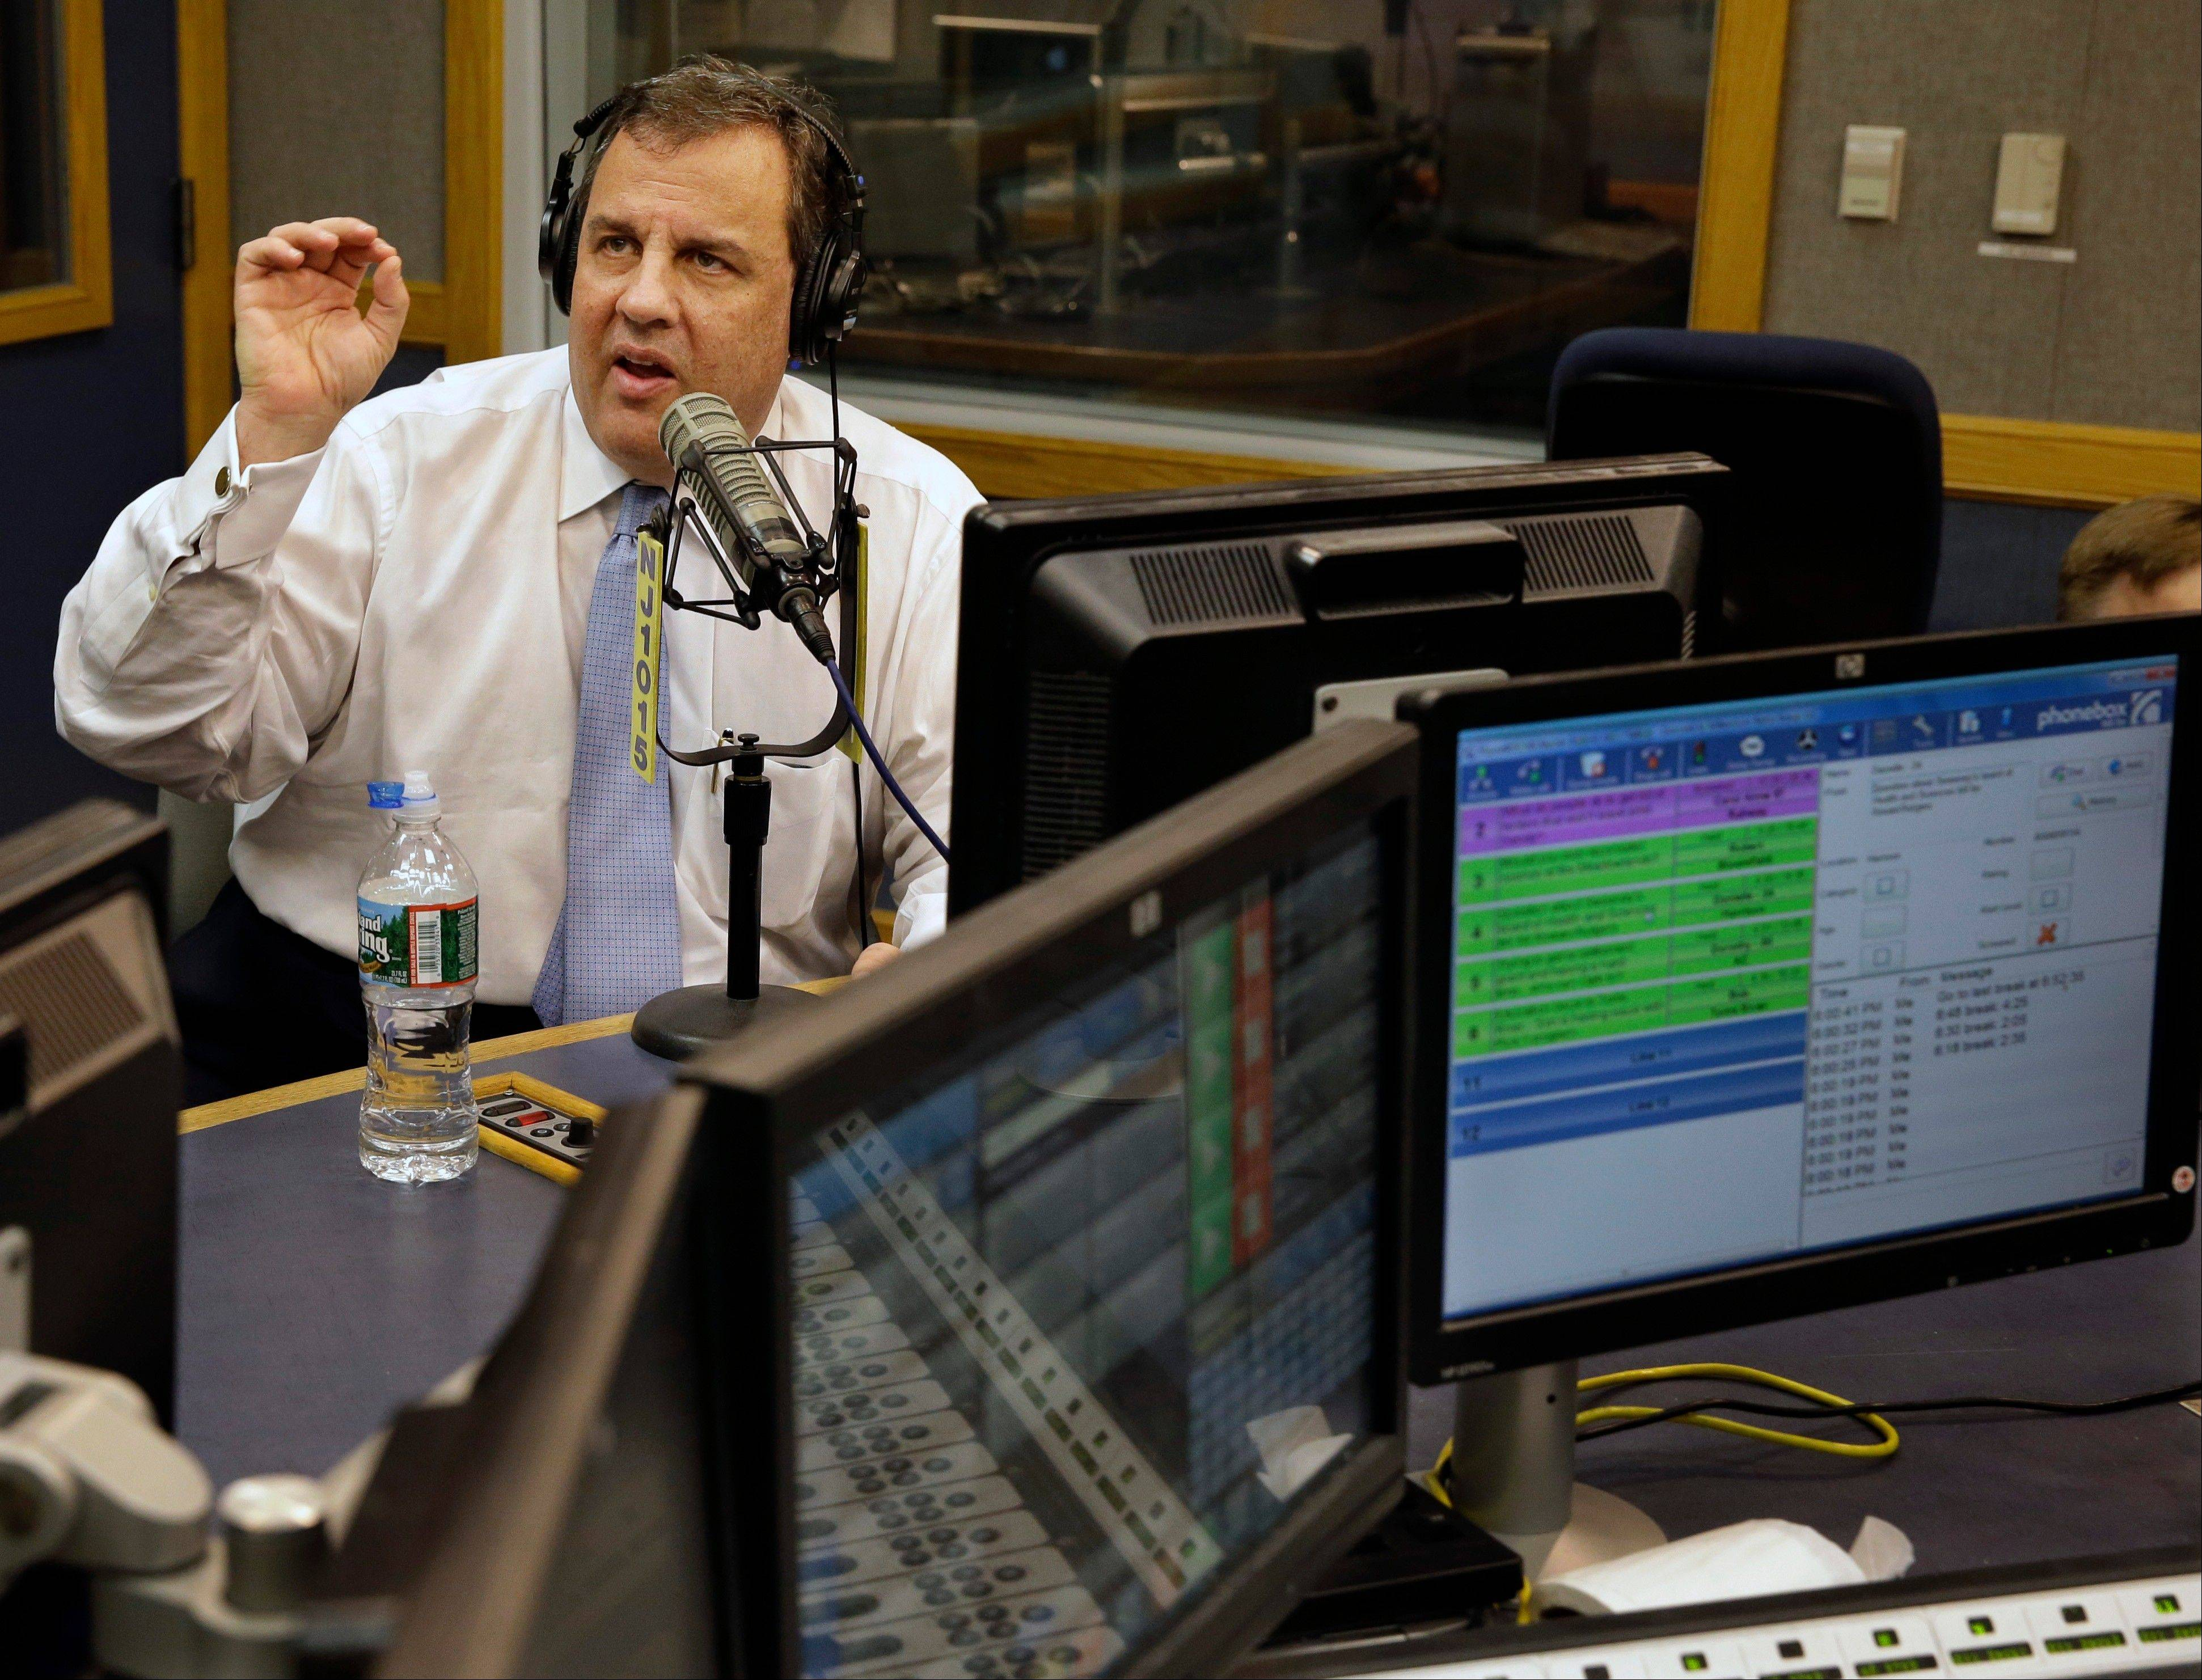 Christie reiterates: No role in lane closures